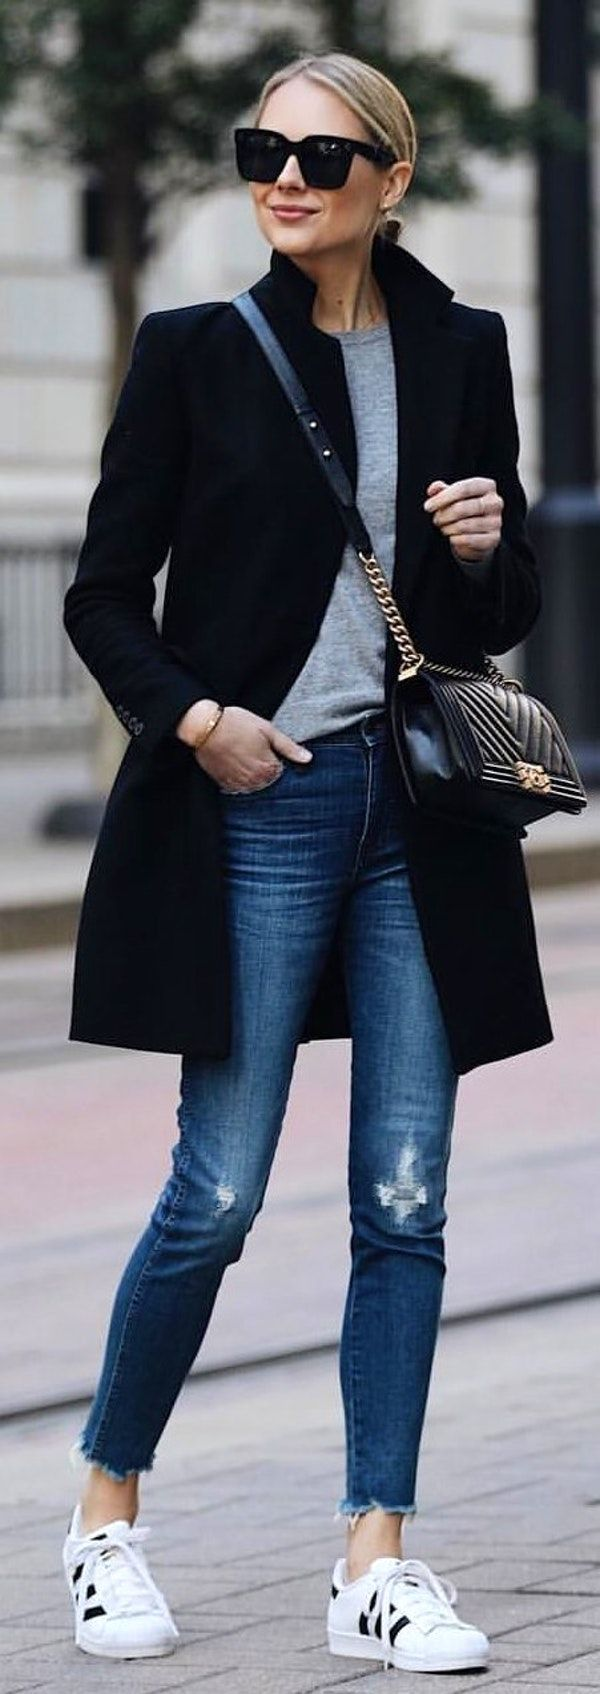 Love this look #Style #Wardrobe #OutfitIdeas #Black #Jacket